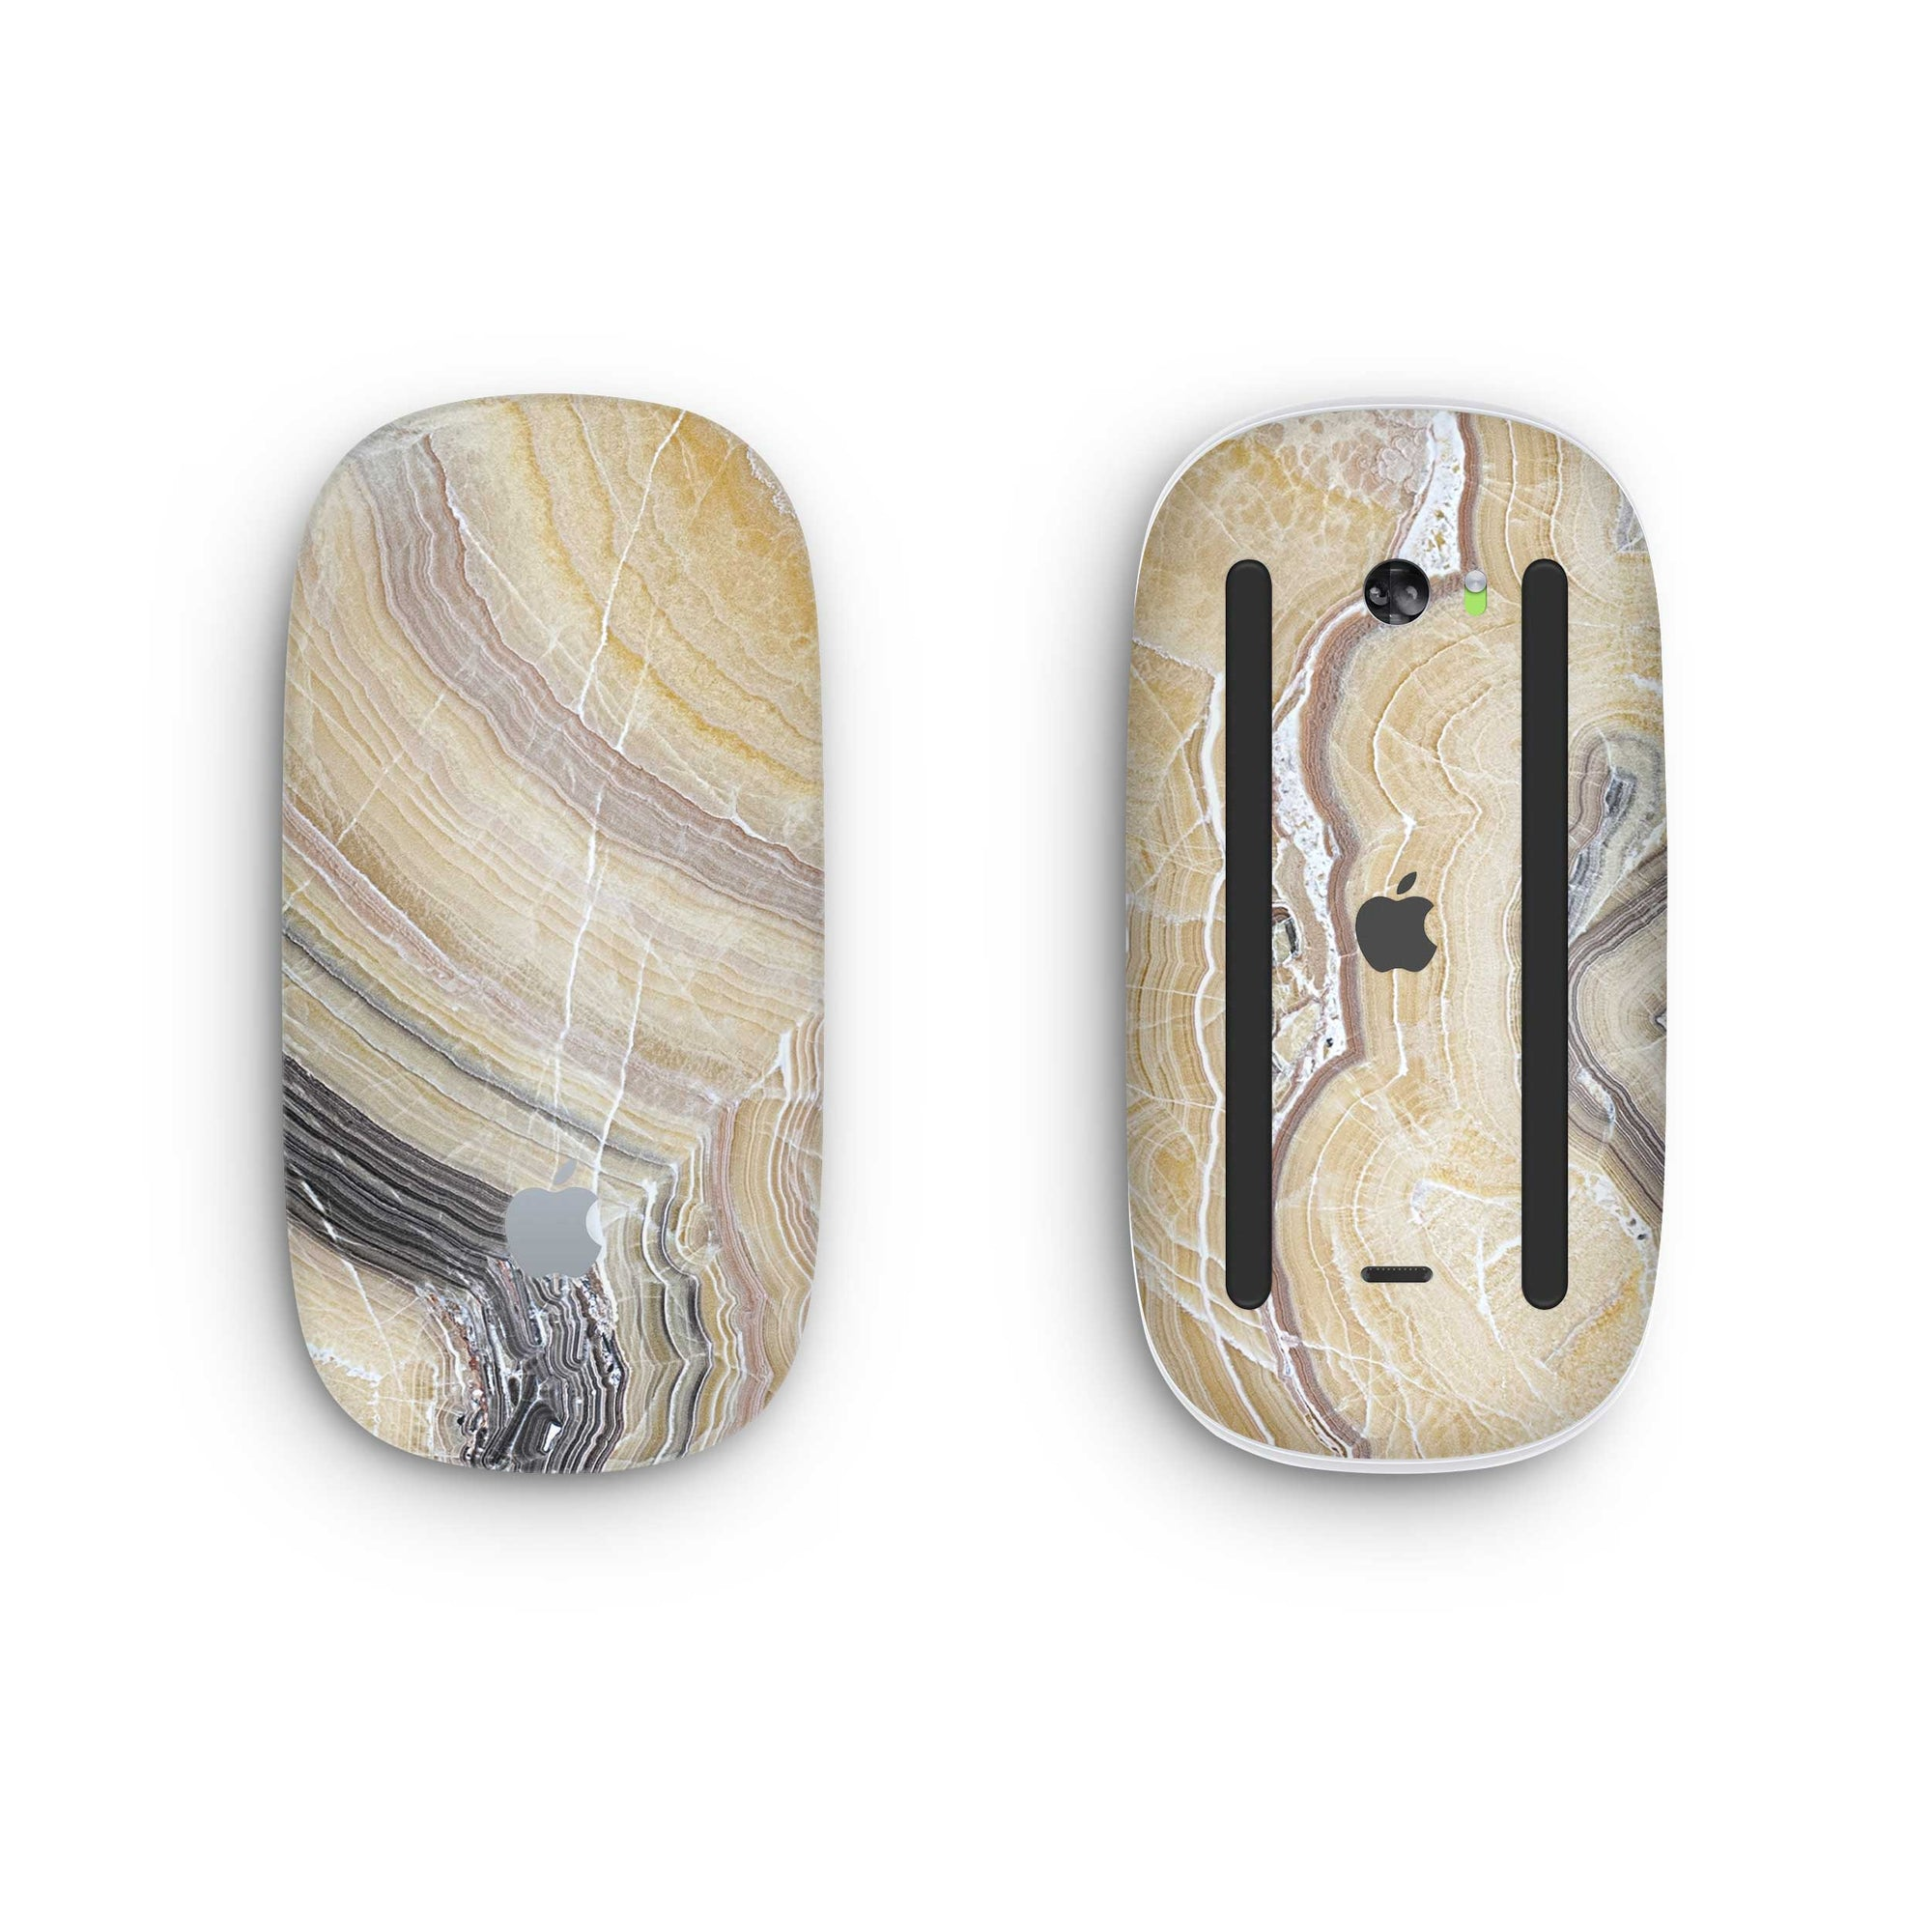 Butter Marble Magic Mouse 2 Skin